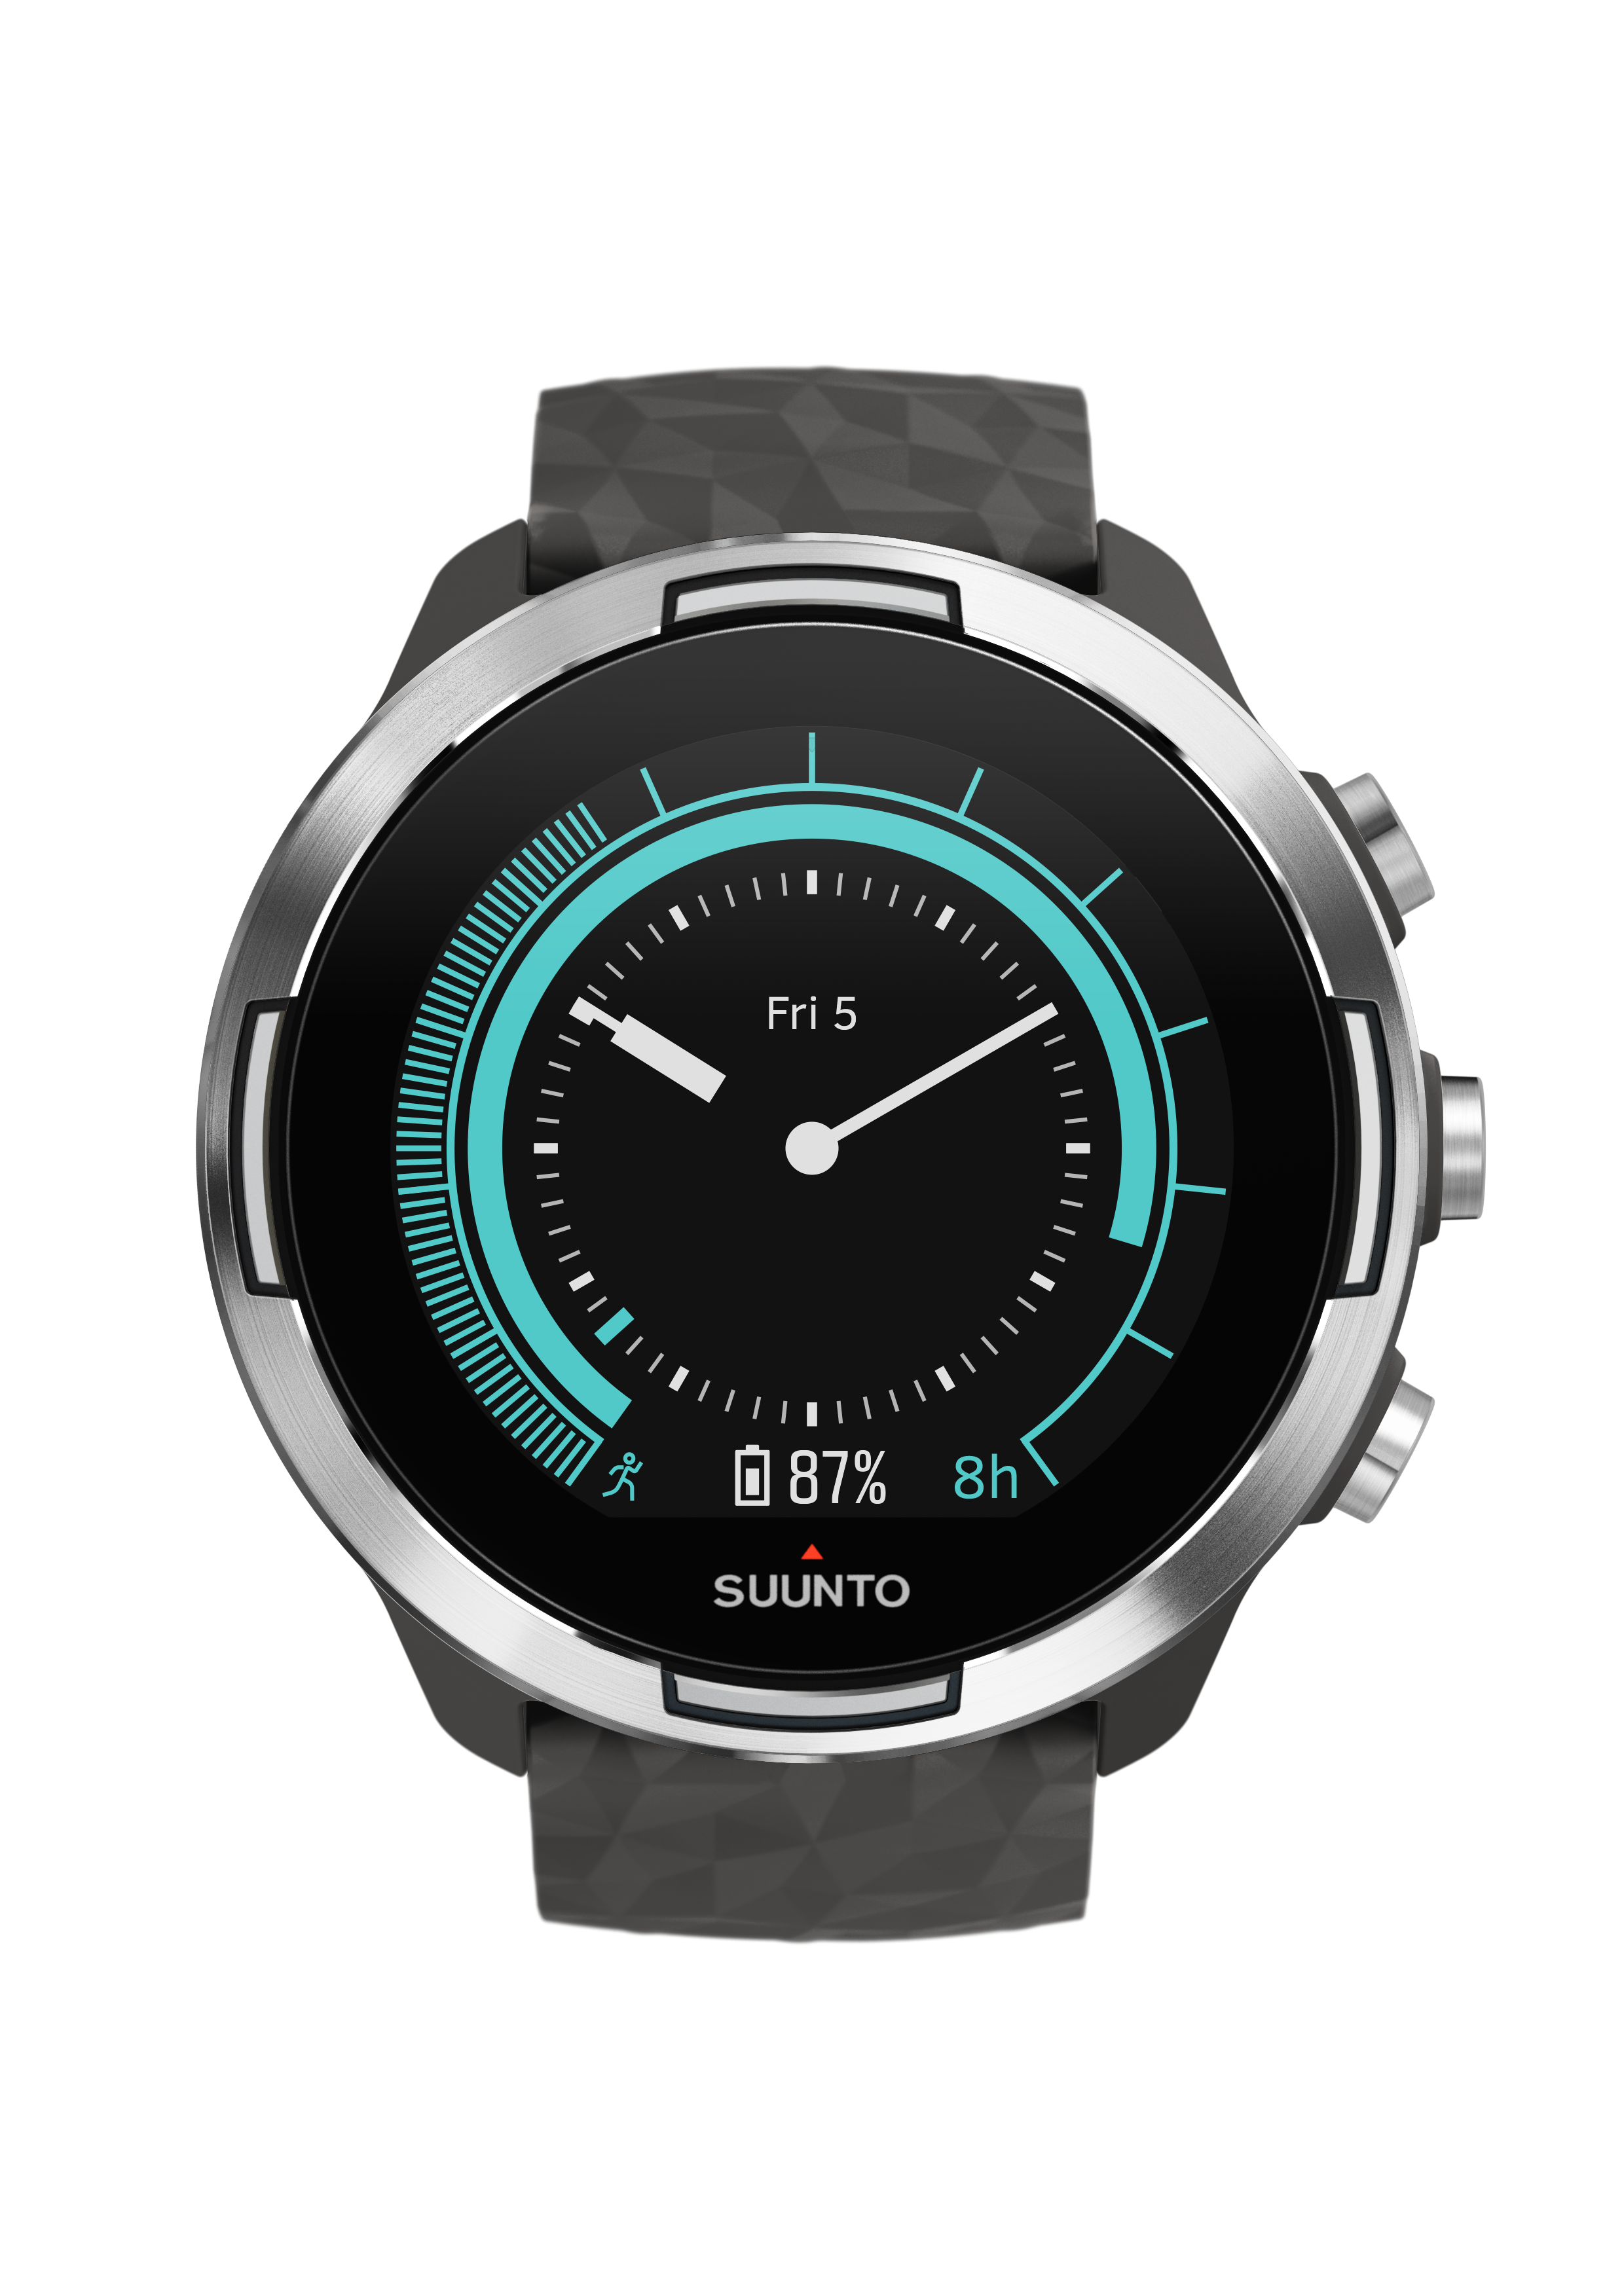 Suunto 9 Baro Graphite - GPS sports watch with a long battery life